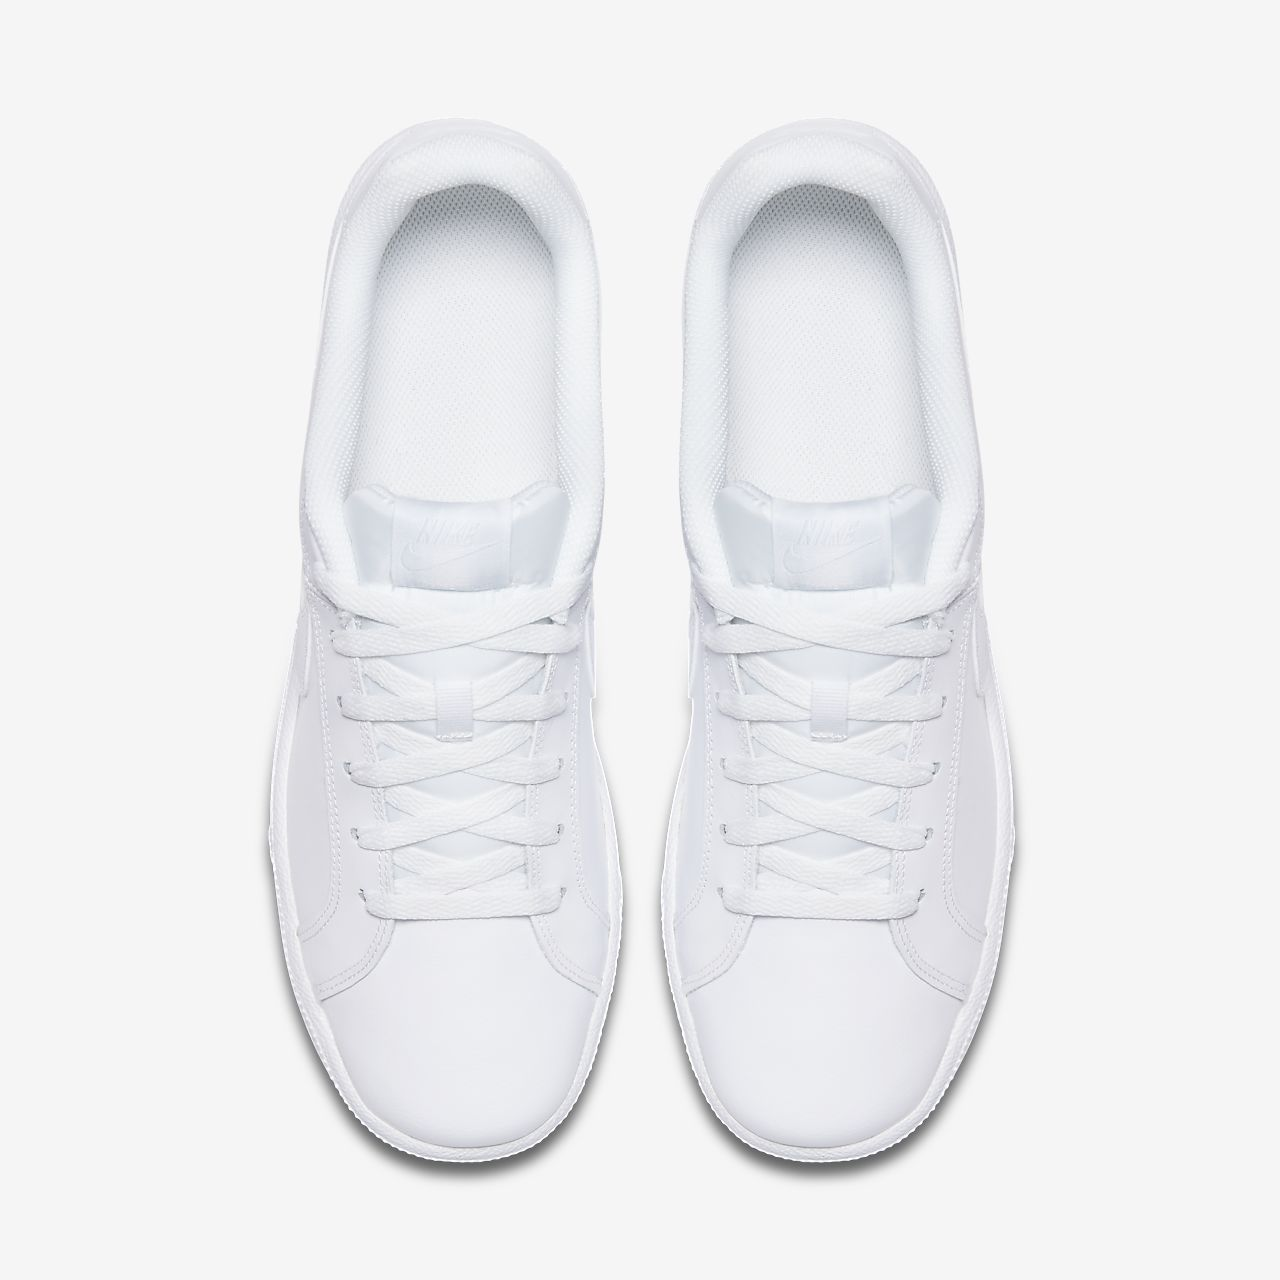 promo code d95f0 710c6 Chaussure Nike Court Royale pour Homme. Nike.com CA